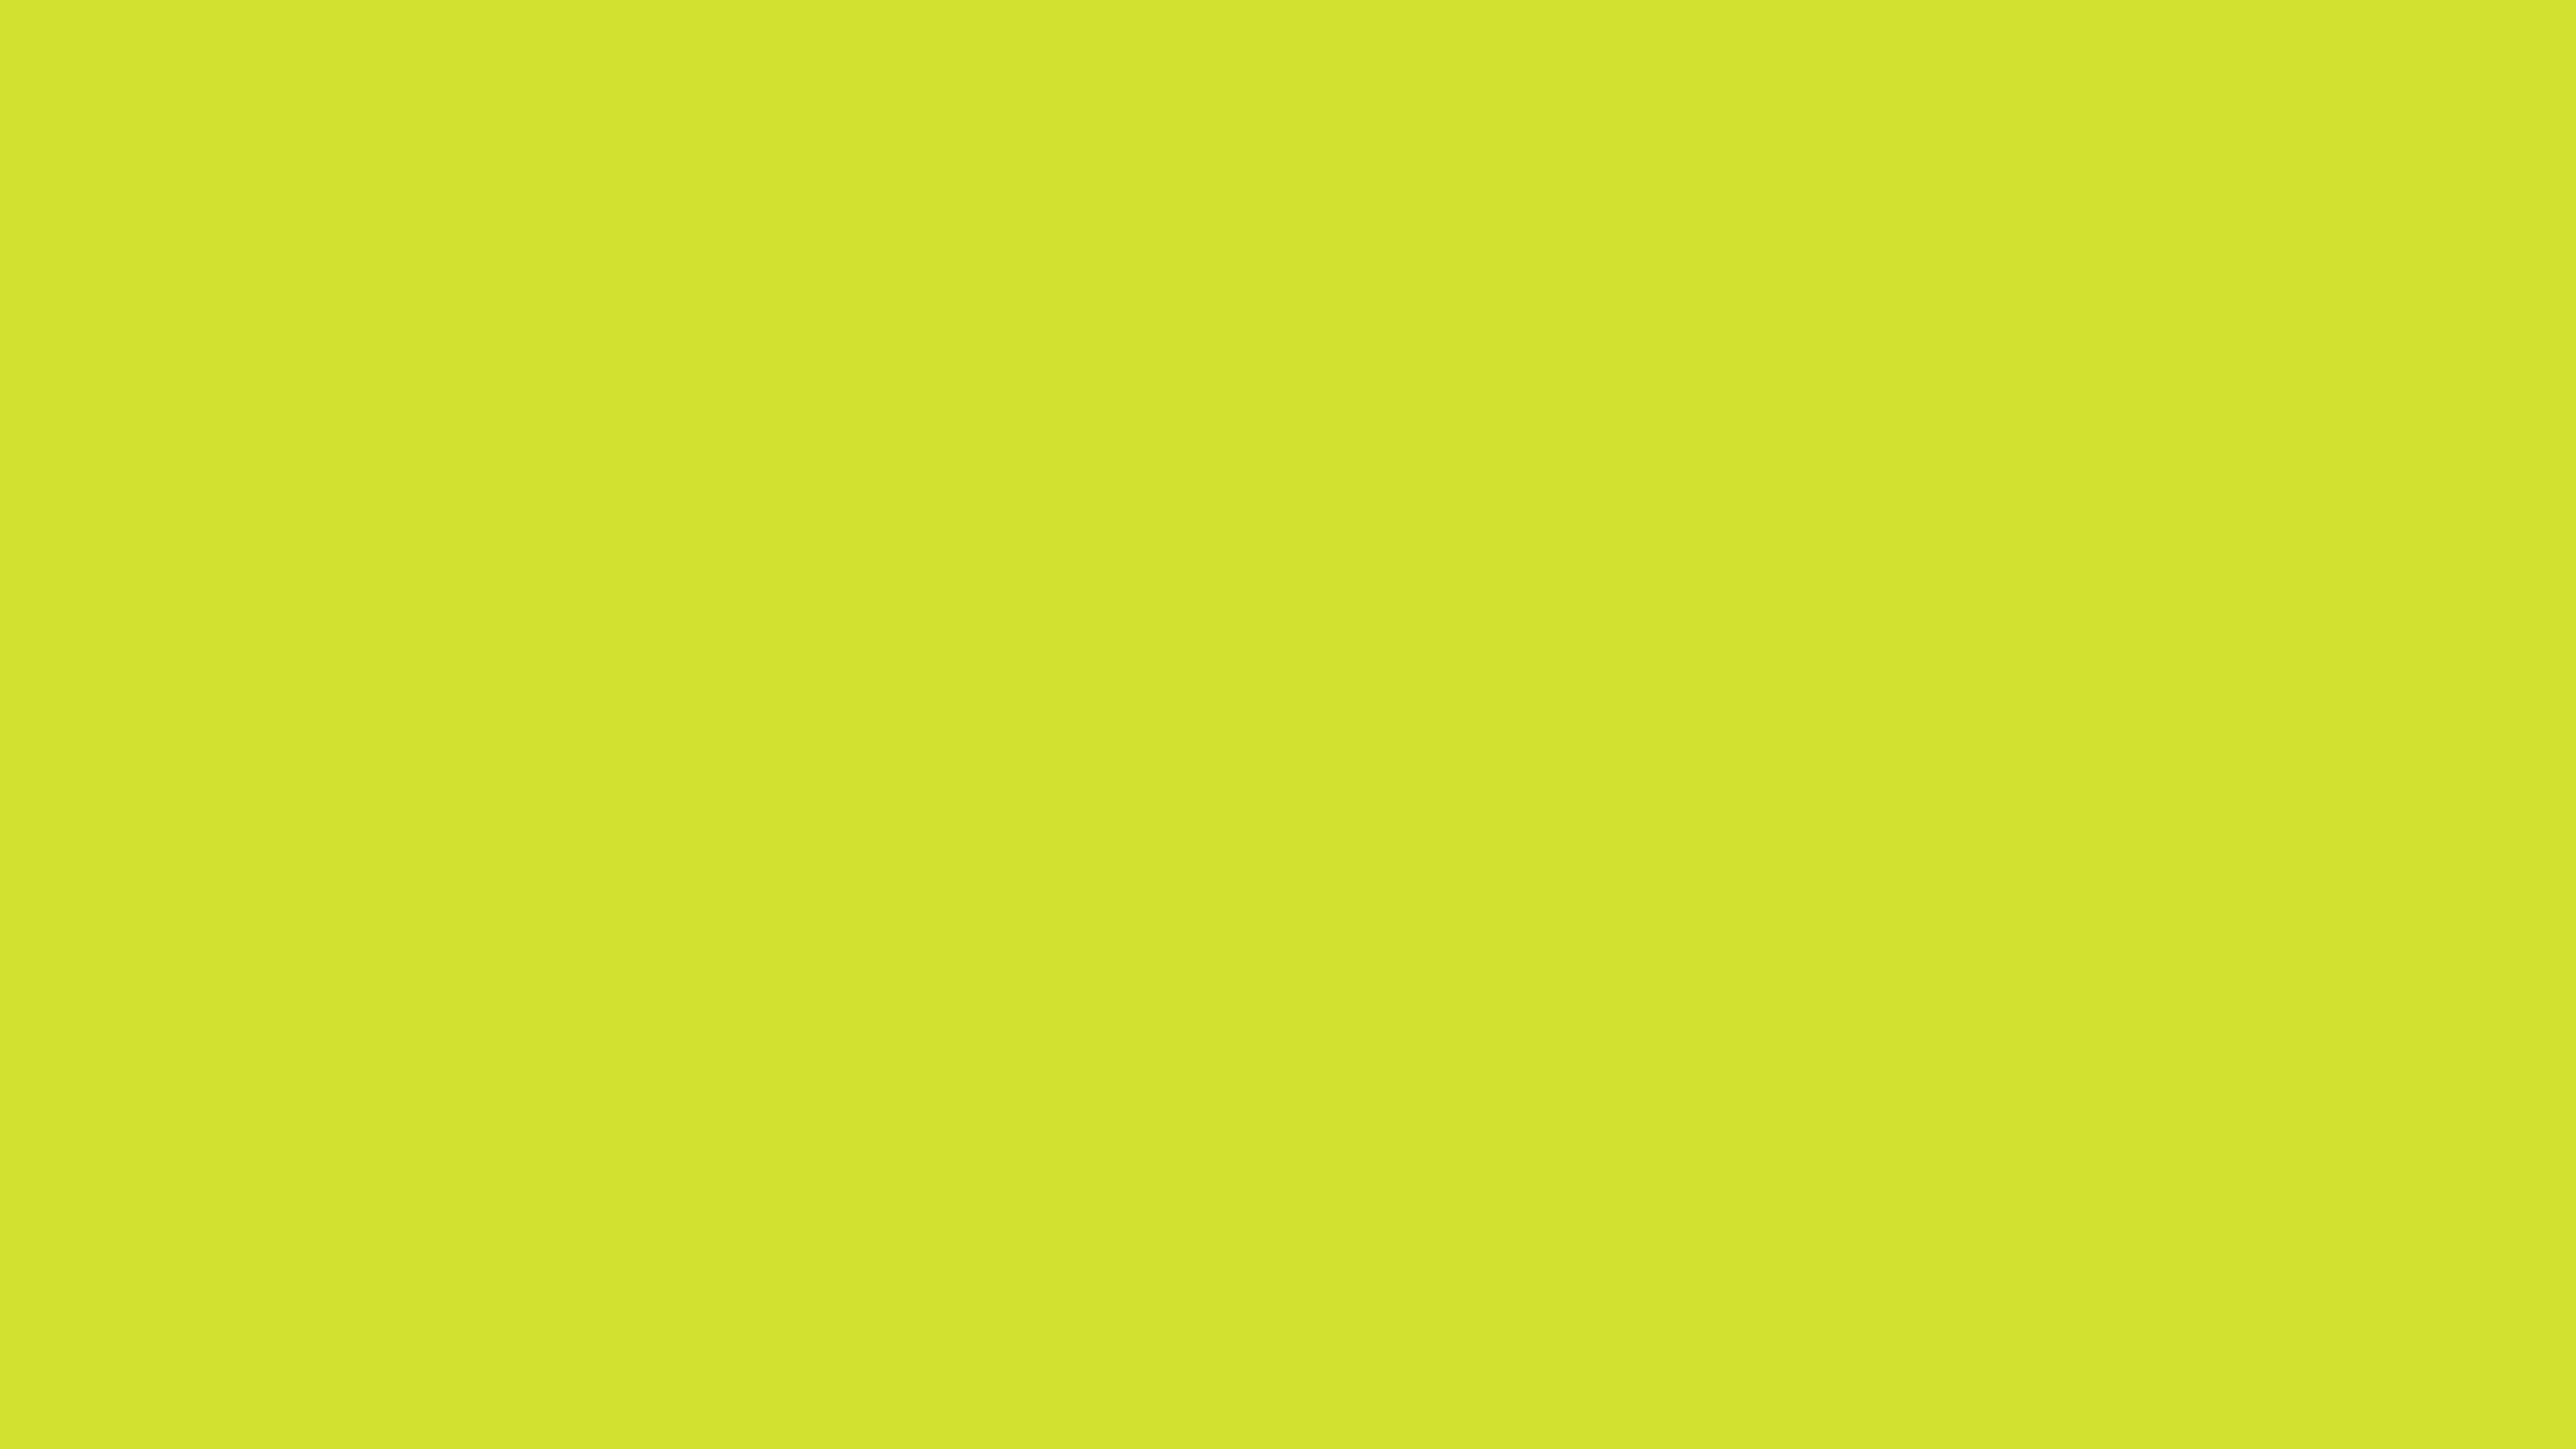 3840x2160 Pear Solid Color Background